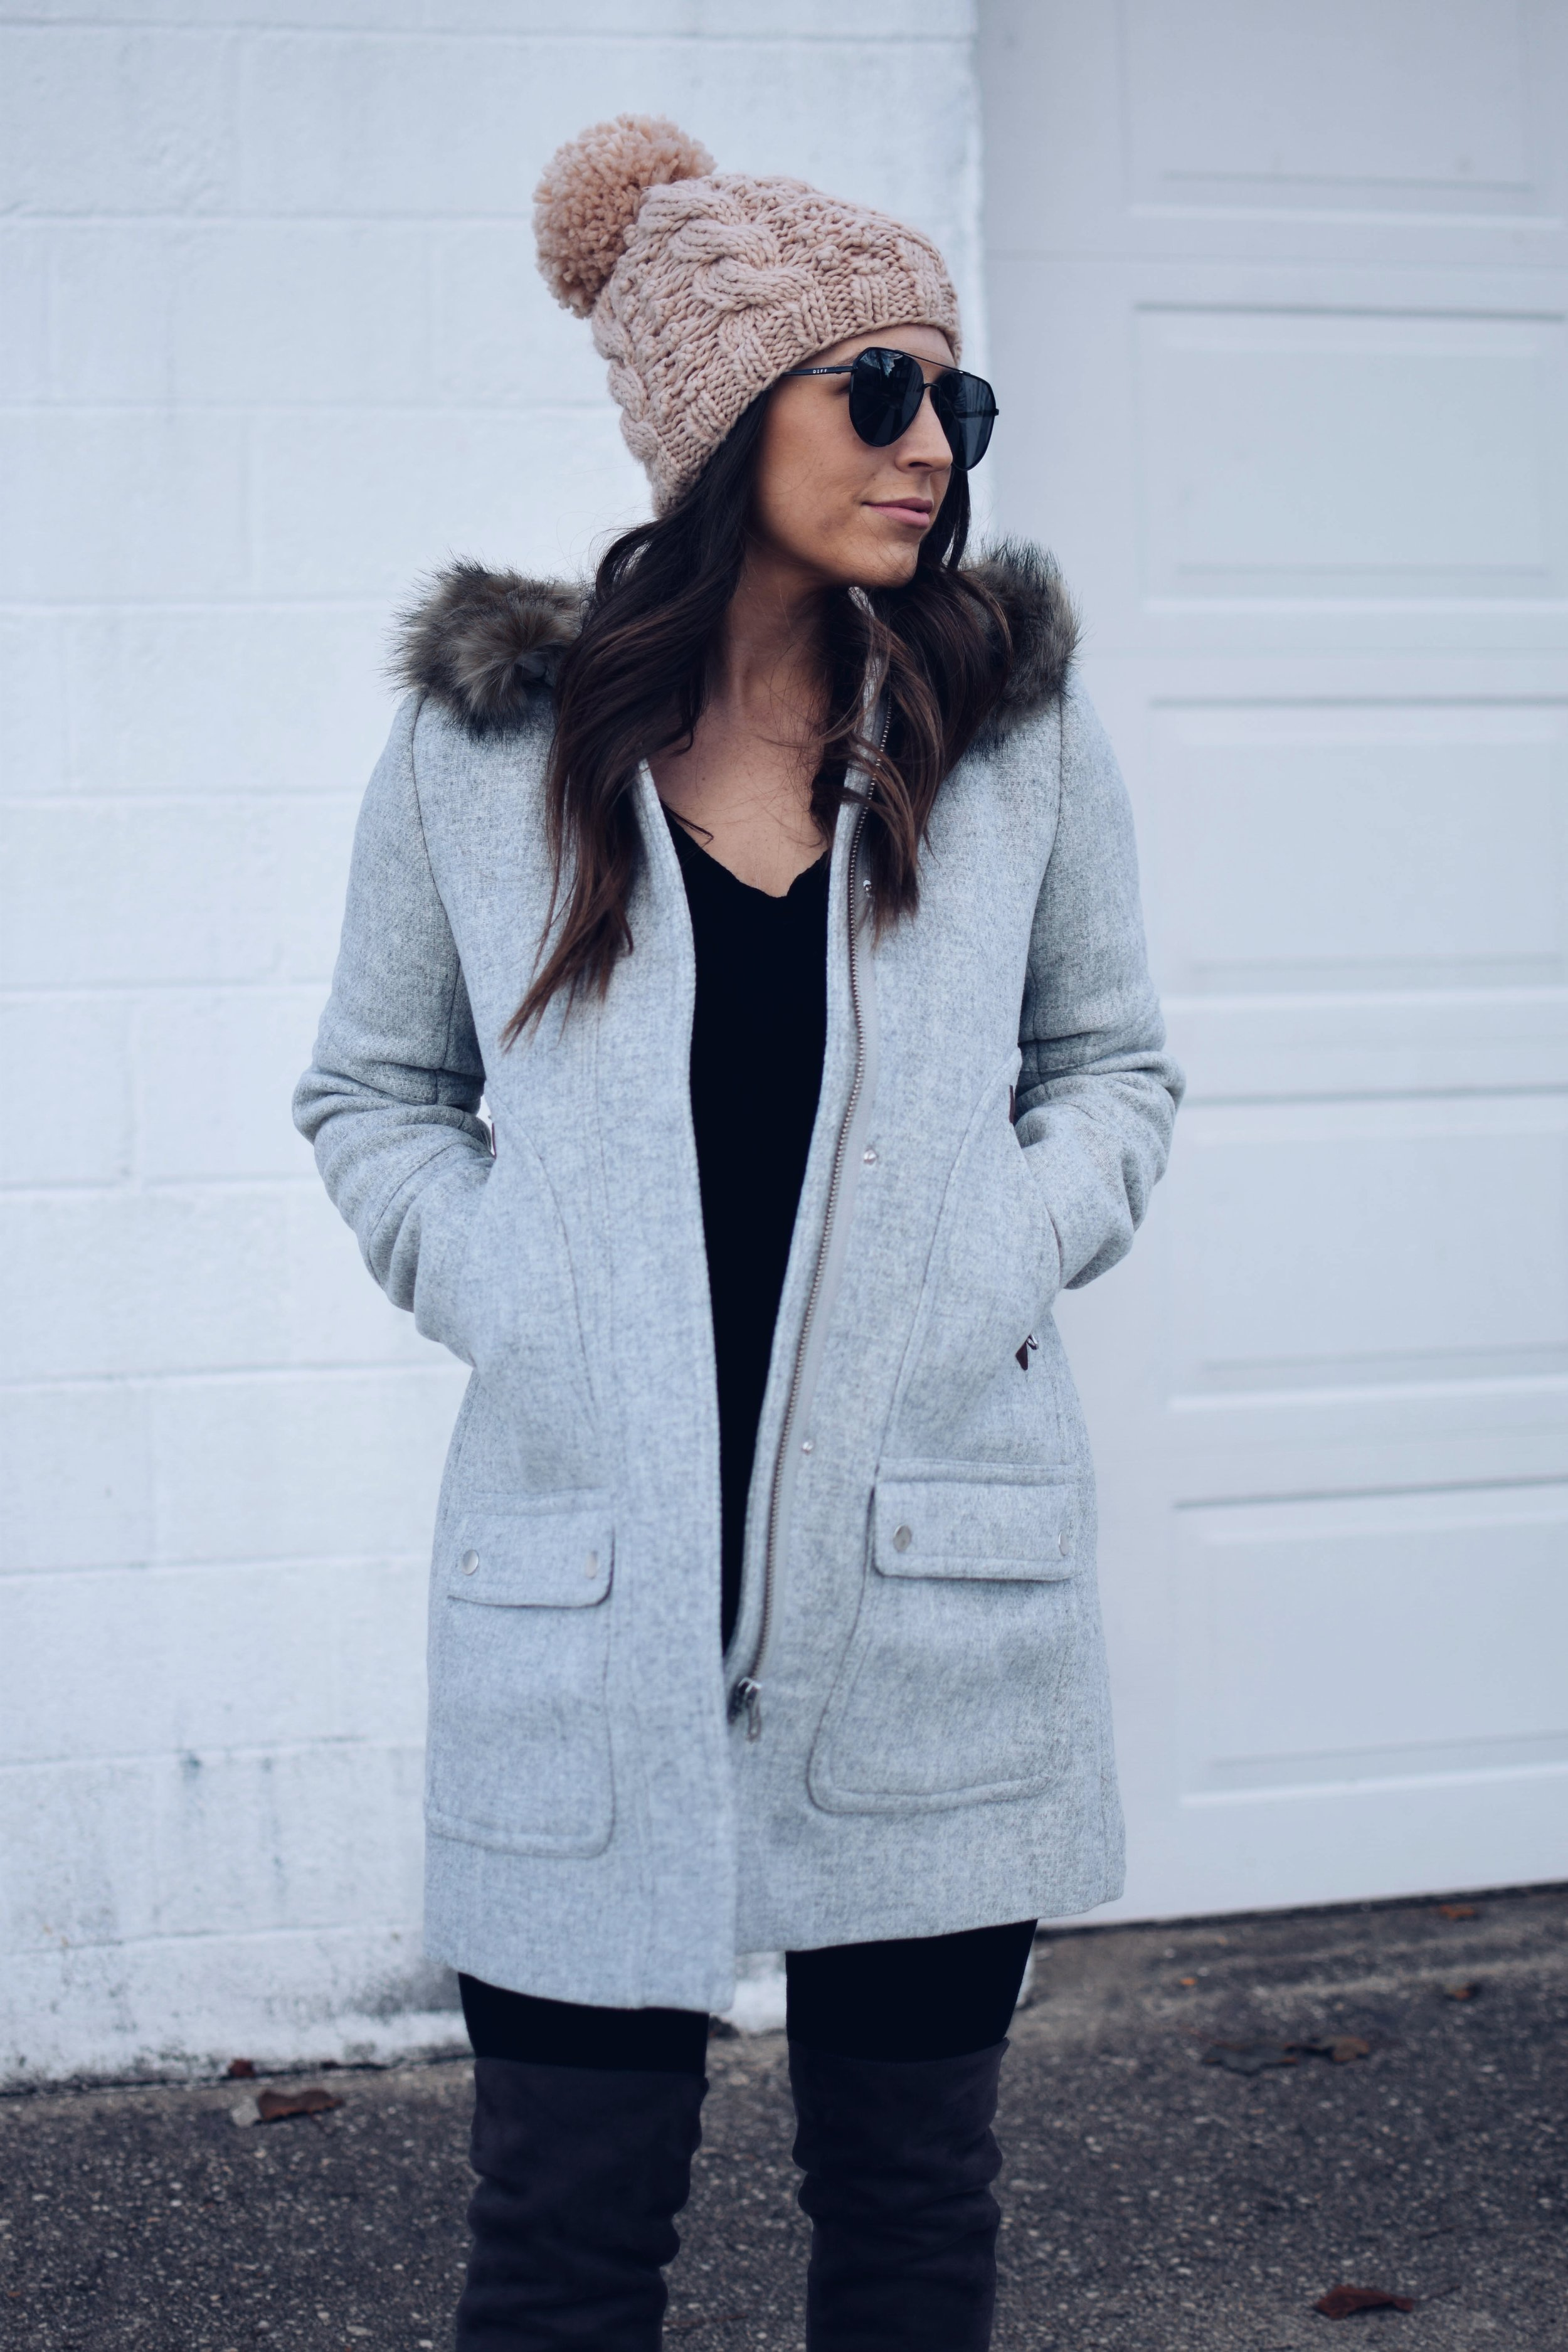 My Outfits On Sale | Pine Barren Beauty | J.Crew coat, Black Friday sales, winter coat, winter outfit idea, pom beanie